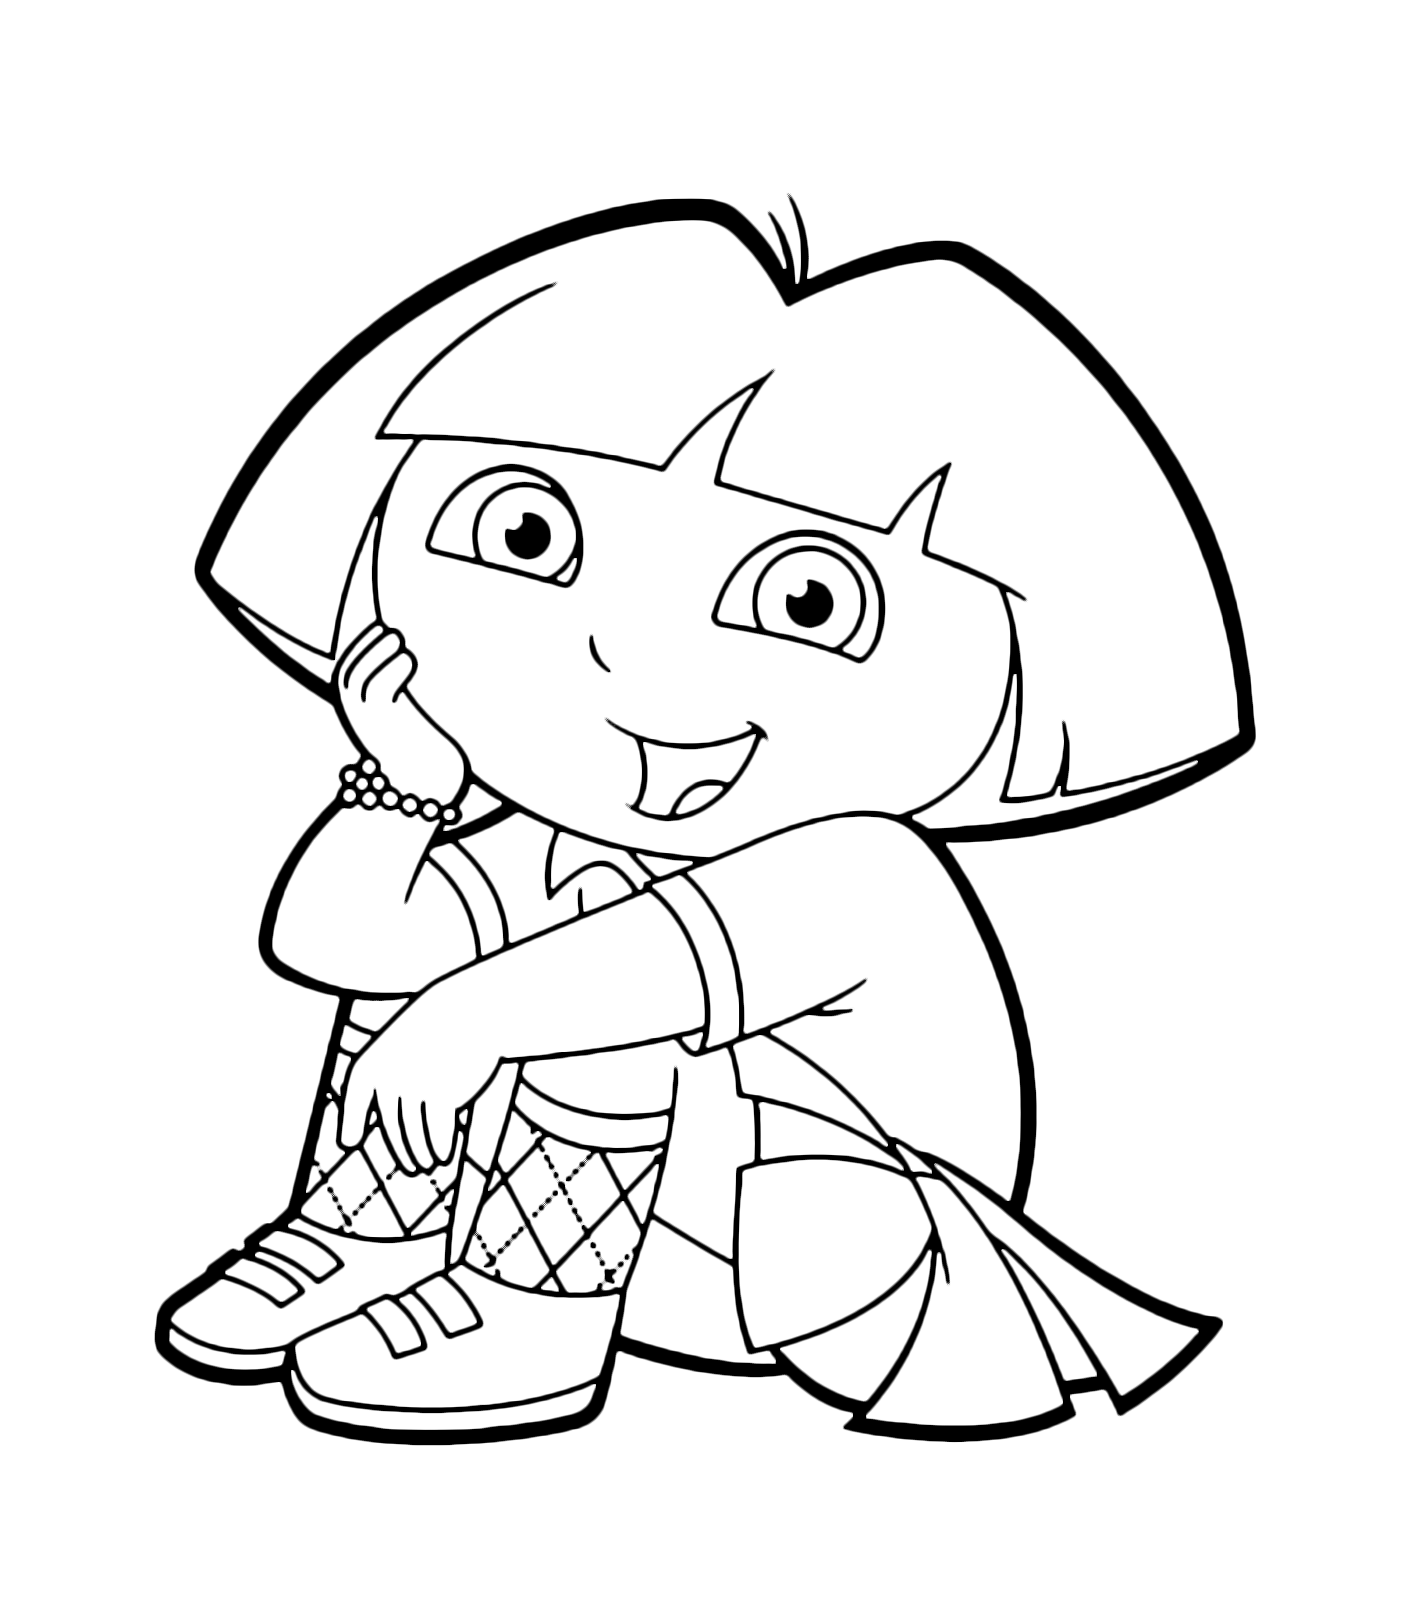 Dora the Explorer - Dora is sitting wearing a pretty skirt